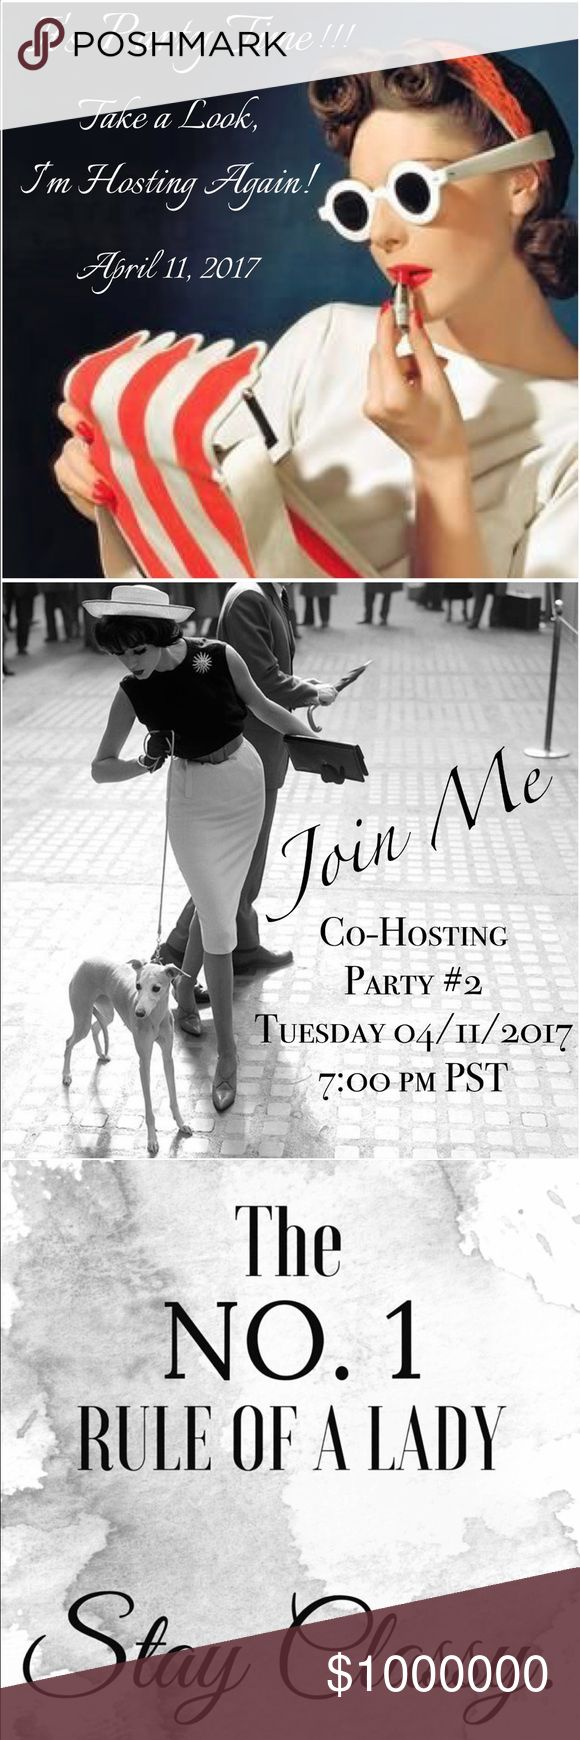 ✨🎉Co-Hosting Party #2 • Tuesday • April 11th🎉✨ I'm so honored and excited to be Co-Hosting my second party on Tuesday, April 11th @ 7:00pm PST. (9:00pm CST) Details to come on theme announcement. Please join me and help spread the word❣️🥂🎉 😘 Co-Host Other